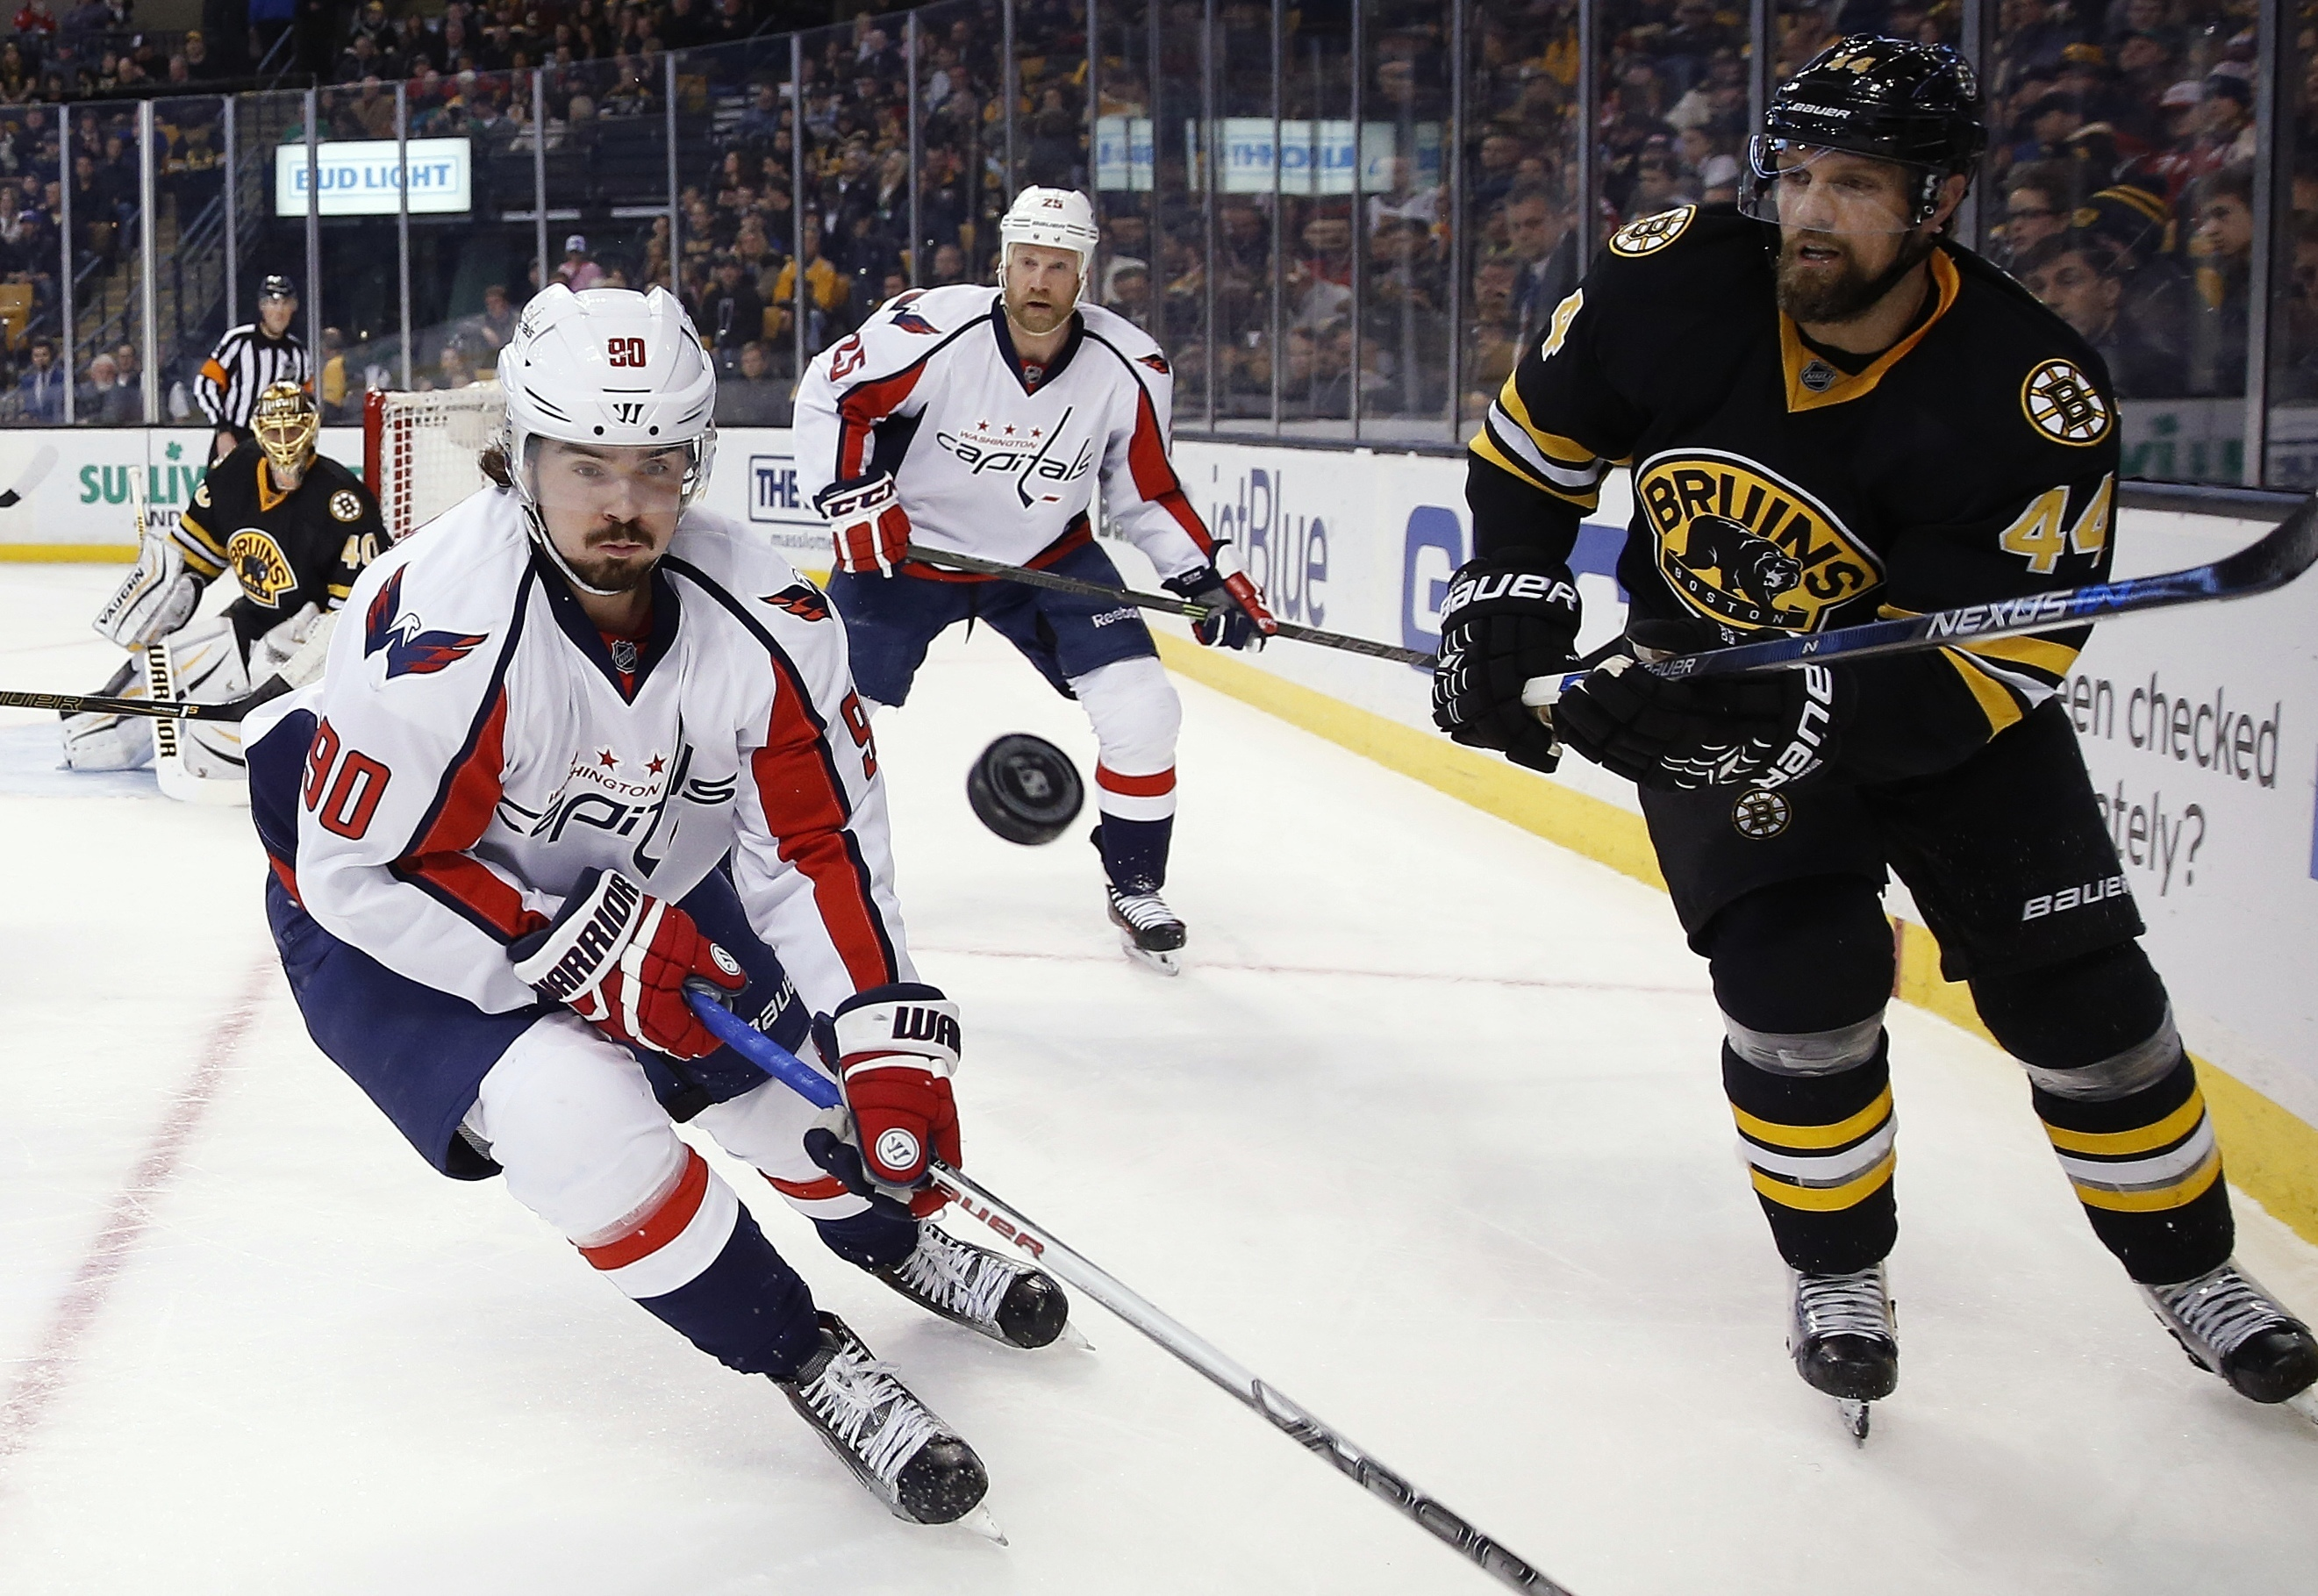 Boston Bruins' Dennis Seidenberg (44) sends the puck past Washington Capitals' Marcus Johansson (90) during the first period of an NHL hockey game in Boston, Saturday, March 5, 2016. (AP Photo/Michael Dwyer)